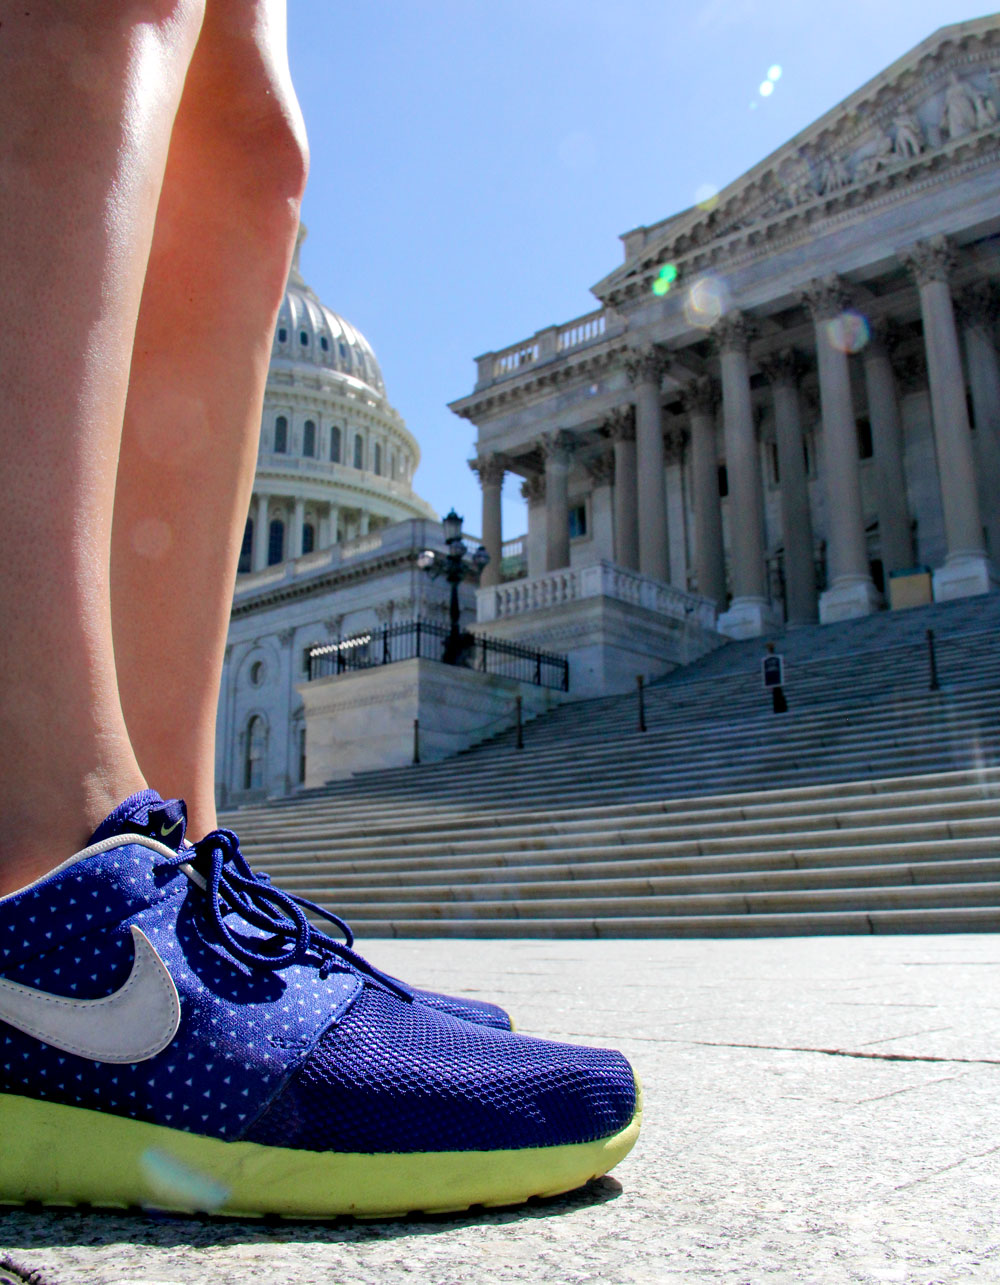 Washington DC and NIke